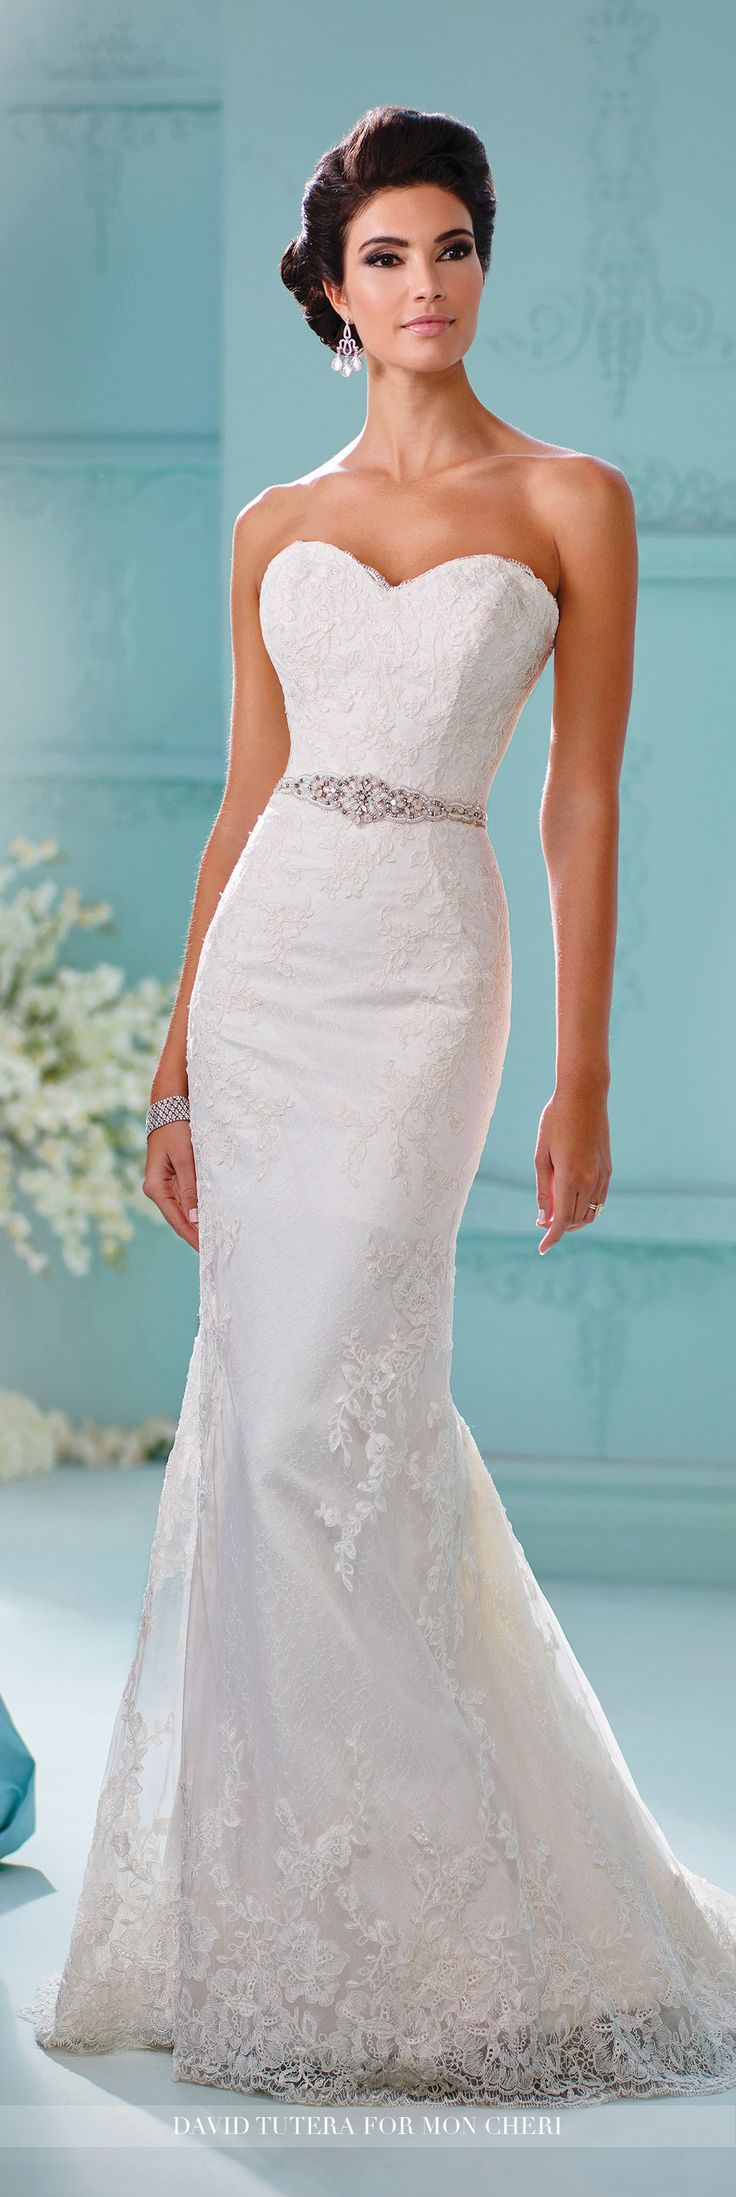 3298 best Wedding Dresses images on Pinterest | Wedding frocks ...